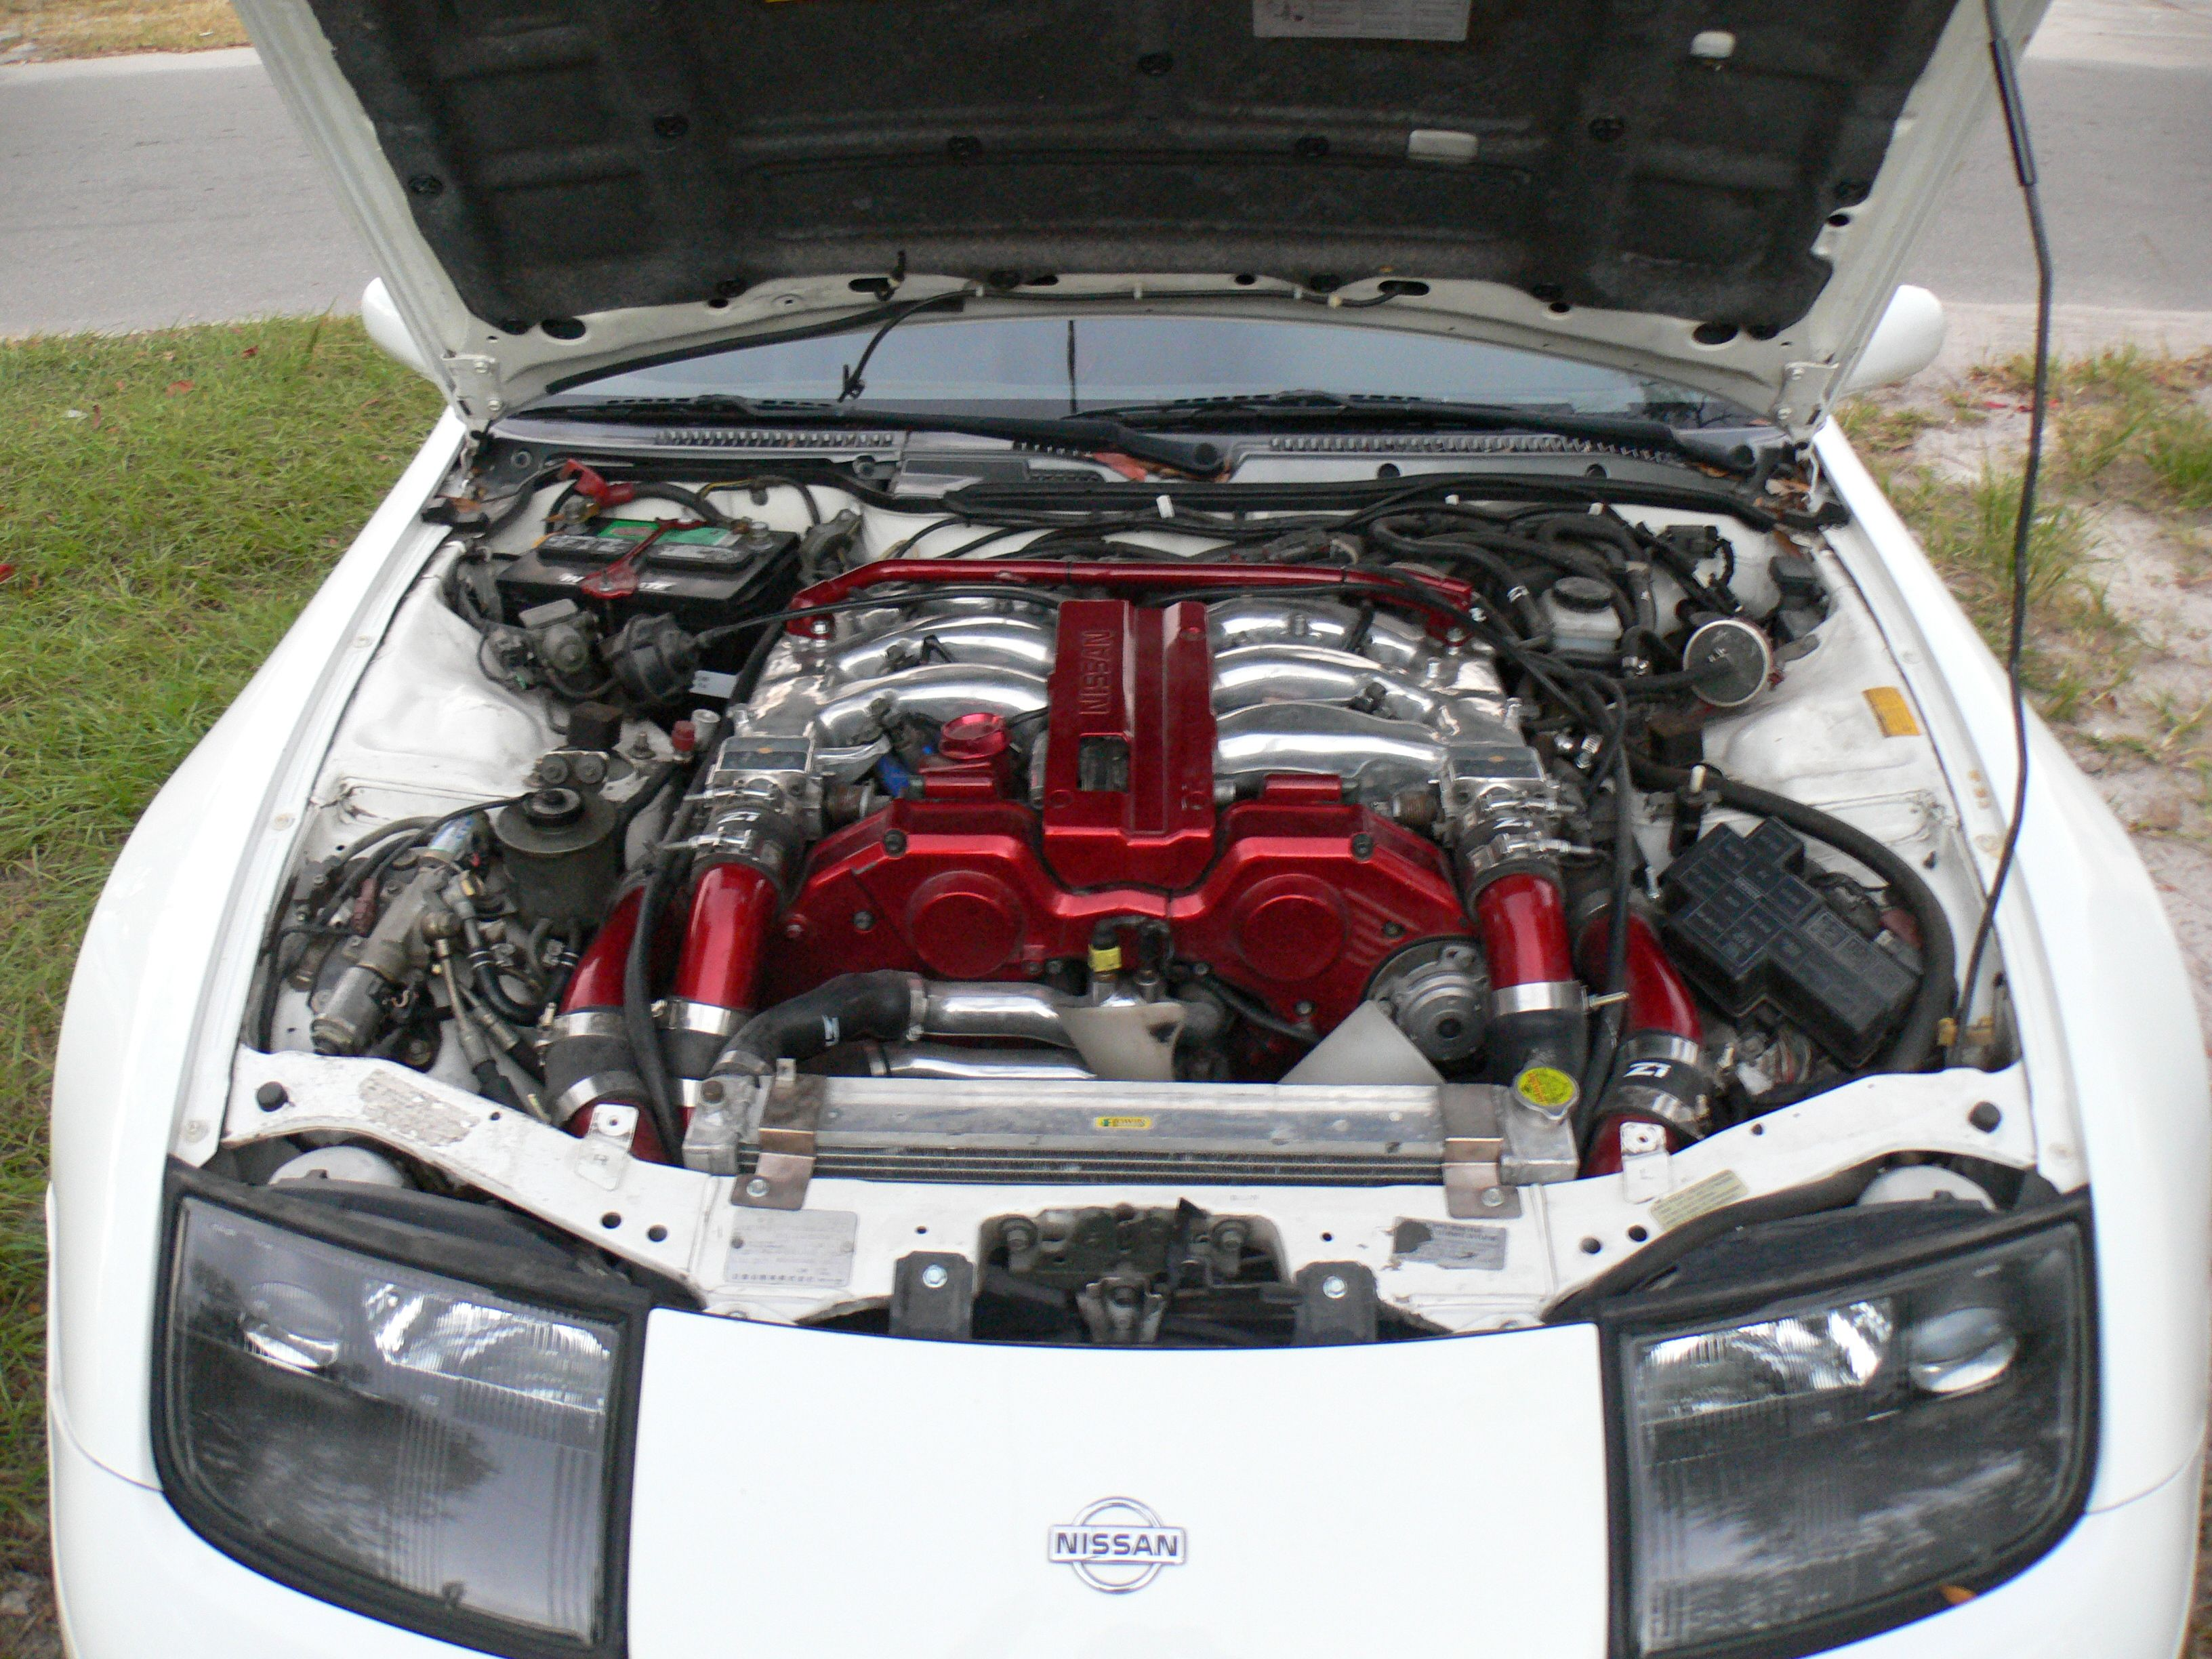 this is a 1991 nissan 300zx twin turbo with 800hp built by z fever